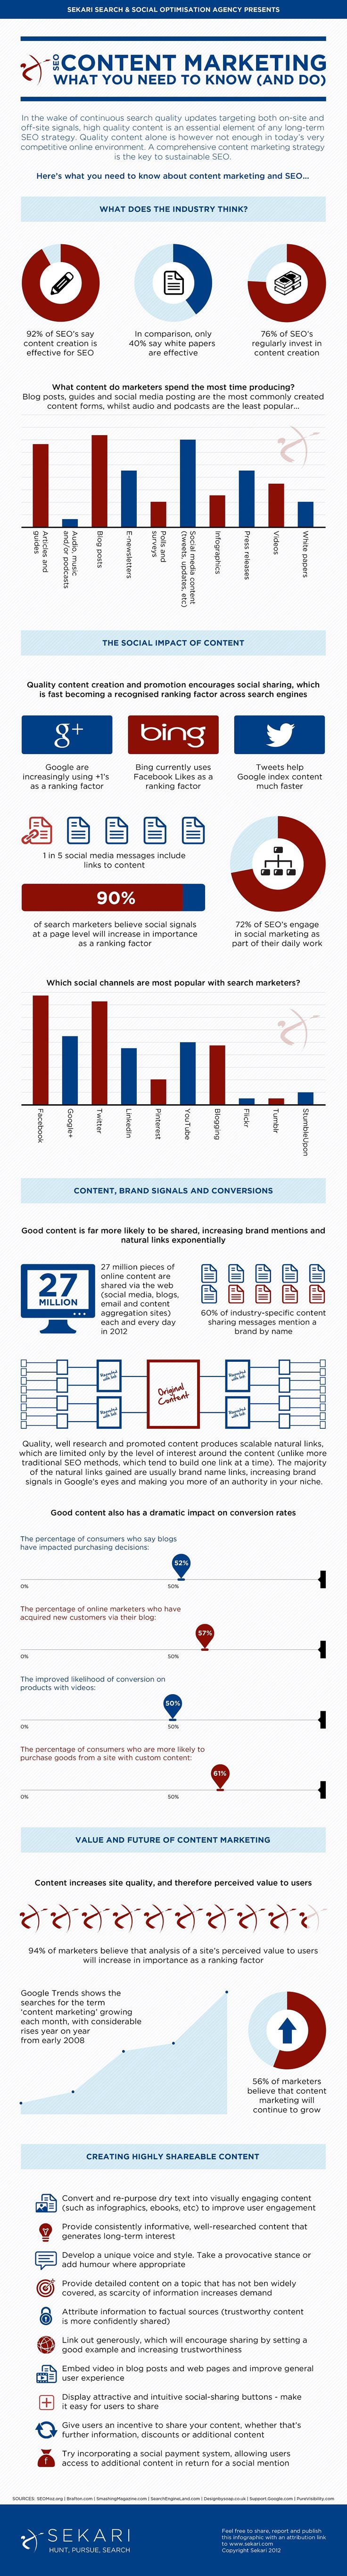 Infographic: #SEO #ContentMarketing: What You Need to Know (and Do)